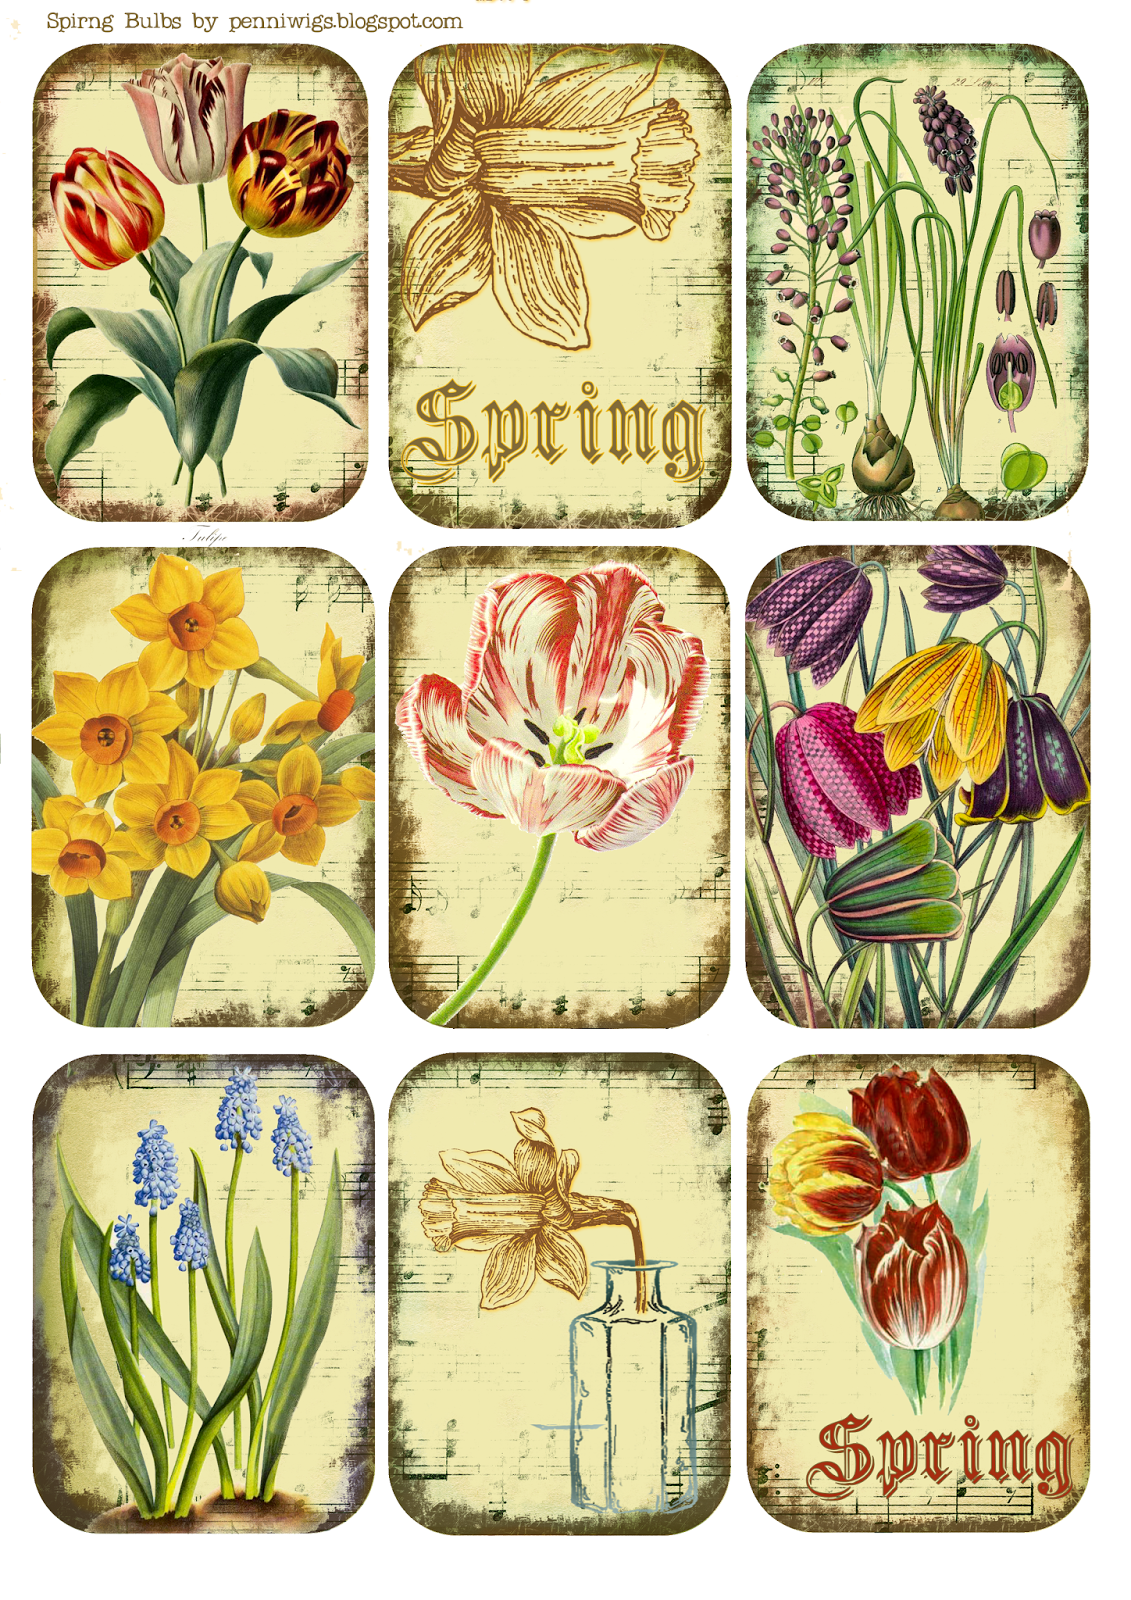 Penniwigs Free Graphics Printables Paper Fun Lore And More Shabby Spring Bulbs Tags Mini